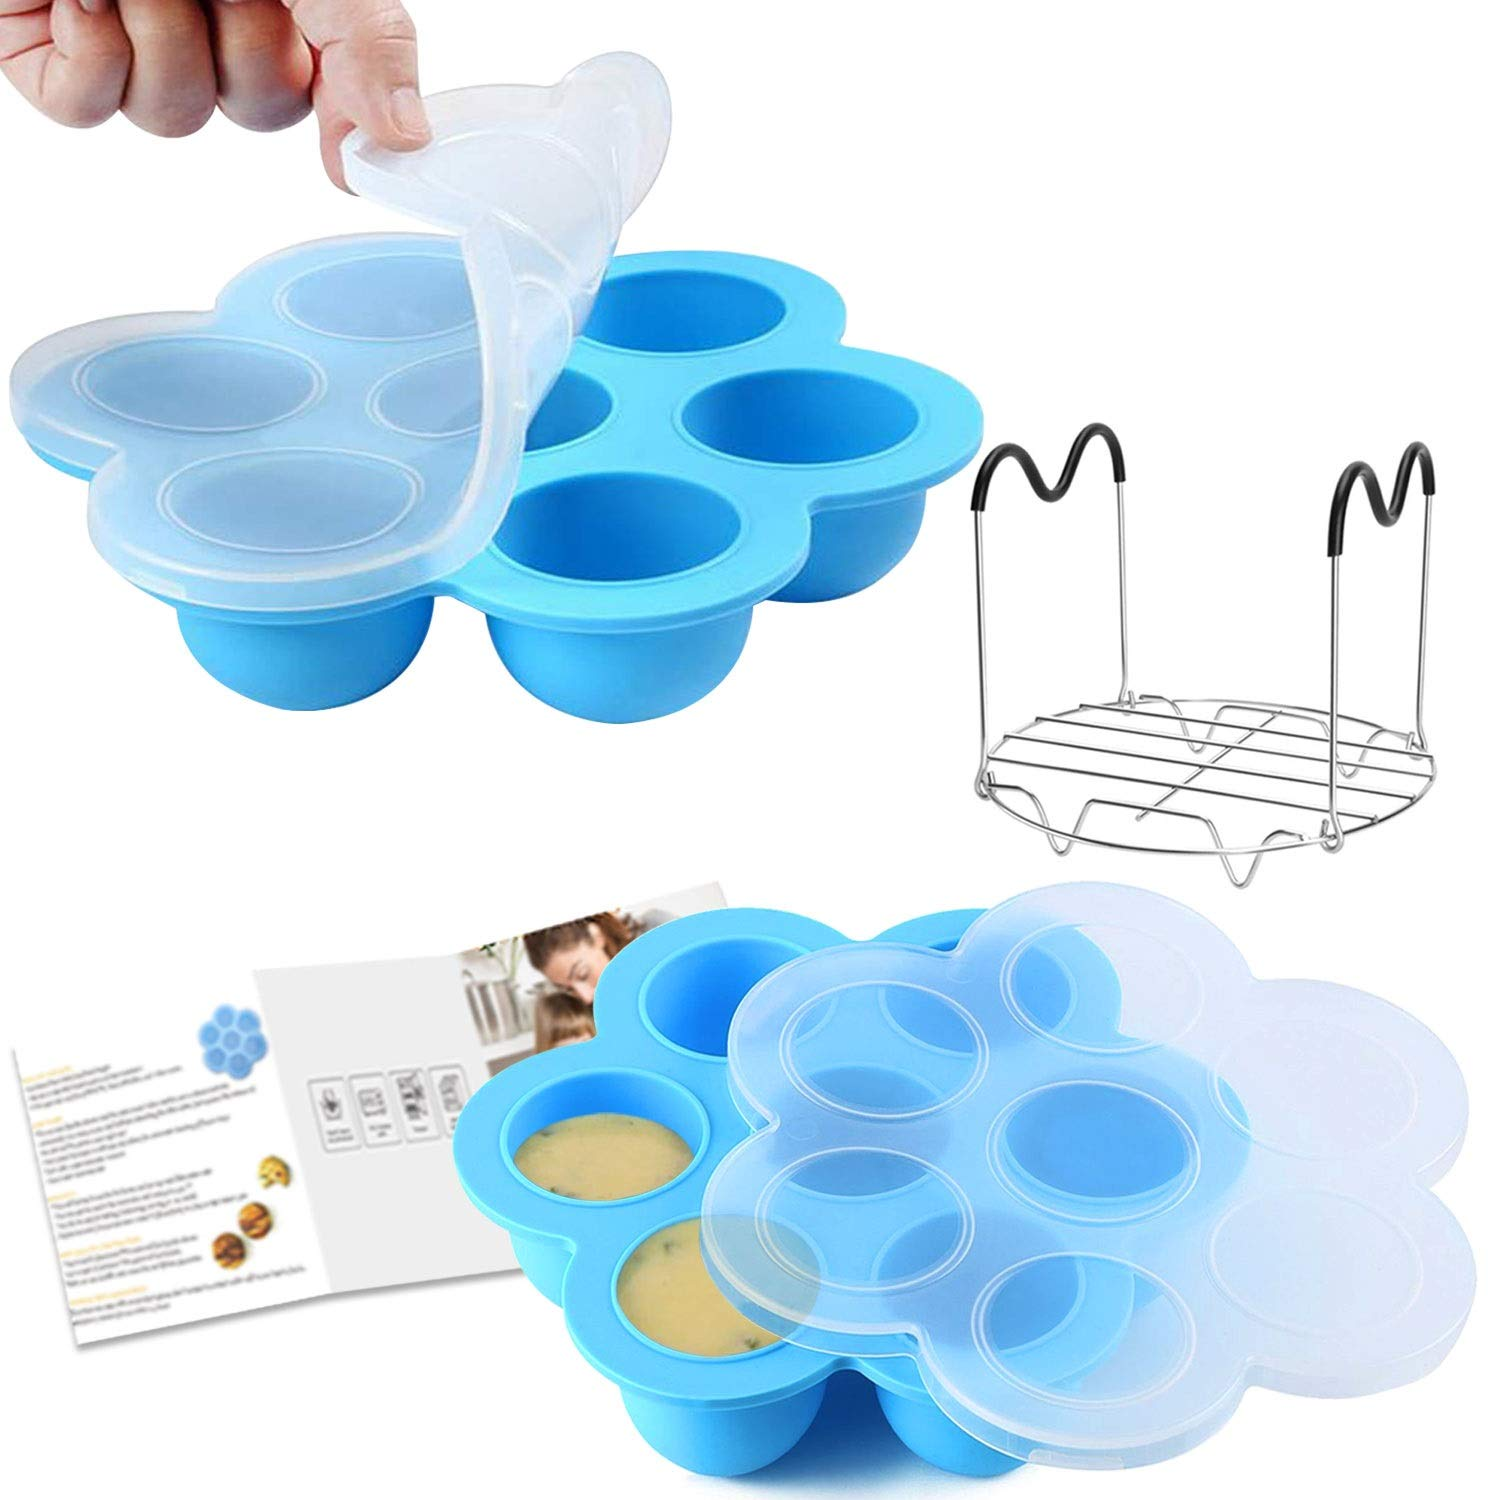 Voloop Silicone Egg Bites Molds and Steamer Rack Trivet with Silicone Handles Compatible with Instant Pot Accessories Instant Pot Accessories 6Qt or 8Qt Pressure Cooker, Freezer Accessory(3Pcs/Set)